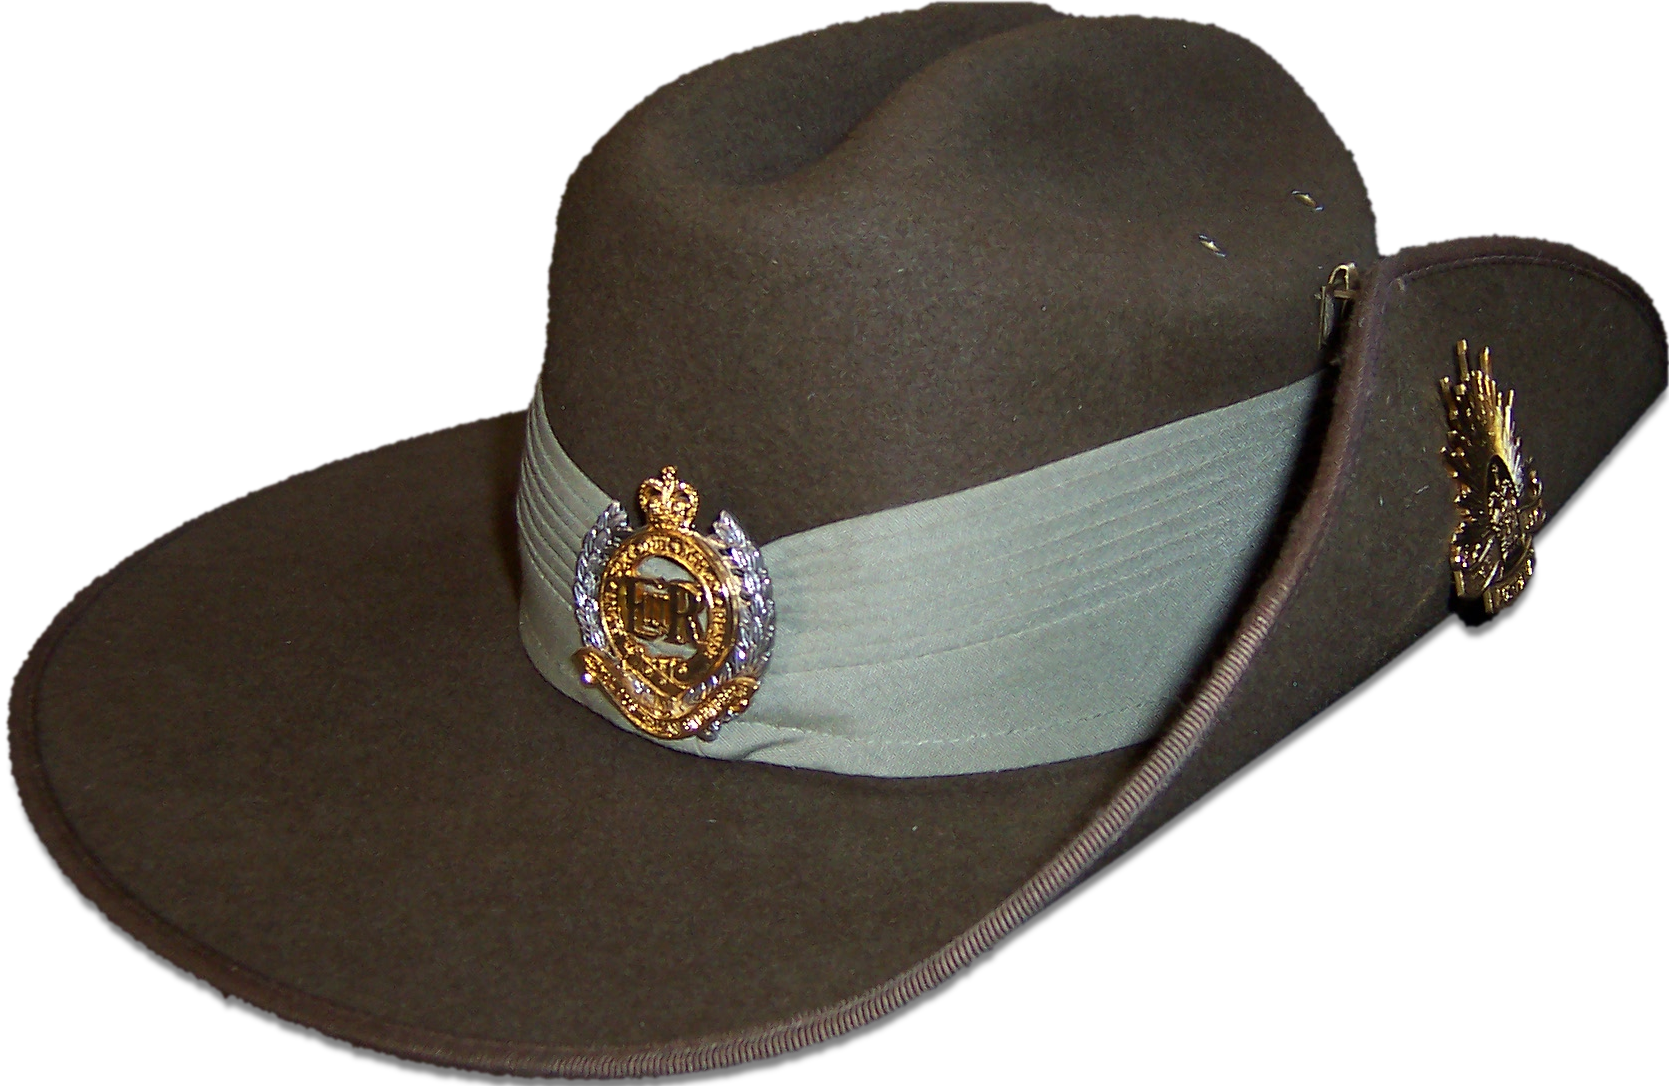 Description australian army ceremonial slouch hat